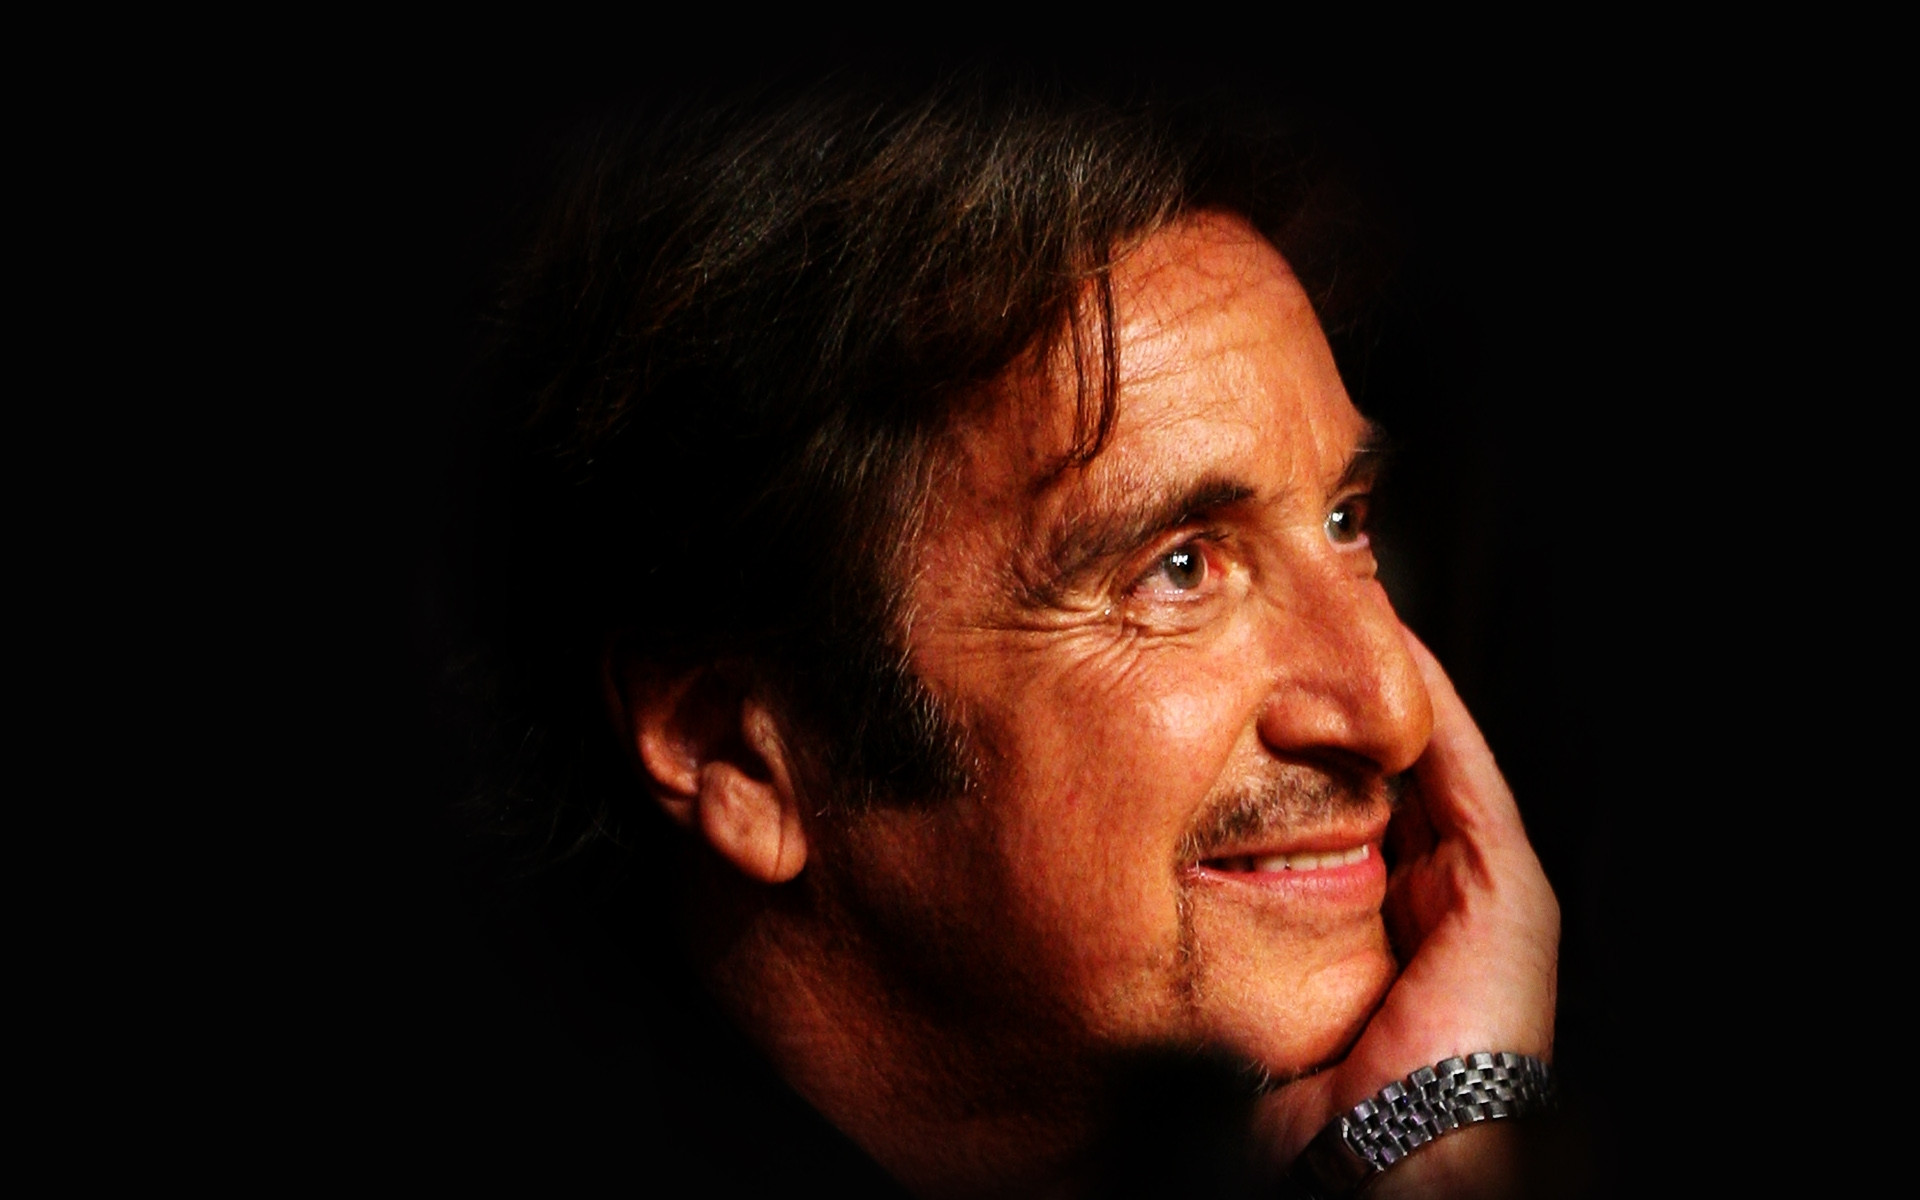 Al Pacino Al Pacino Wallpapers High Quality Download Free